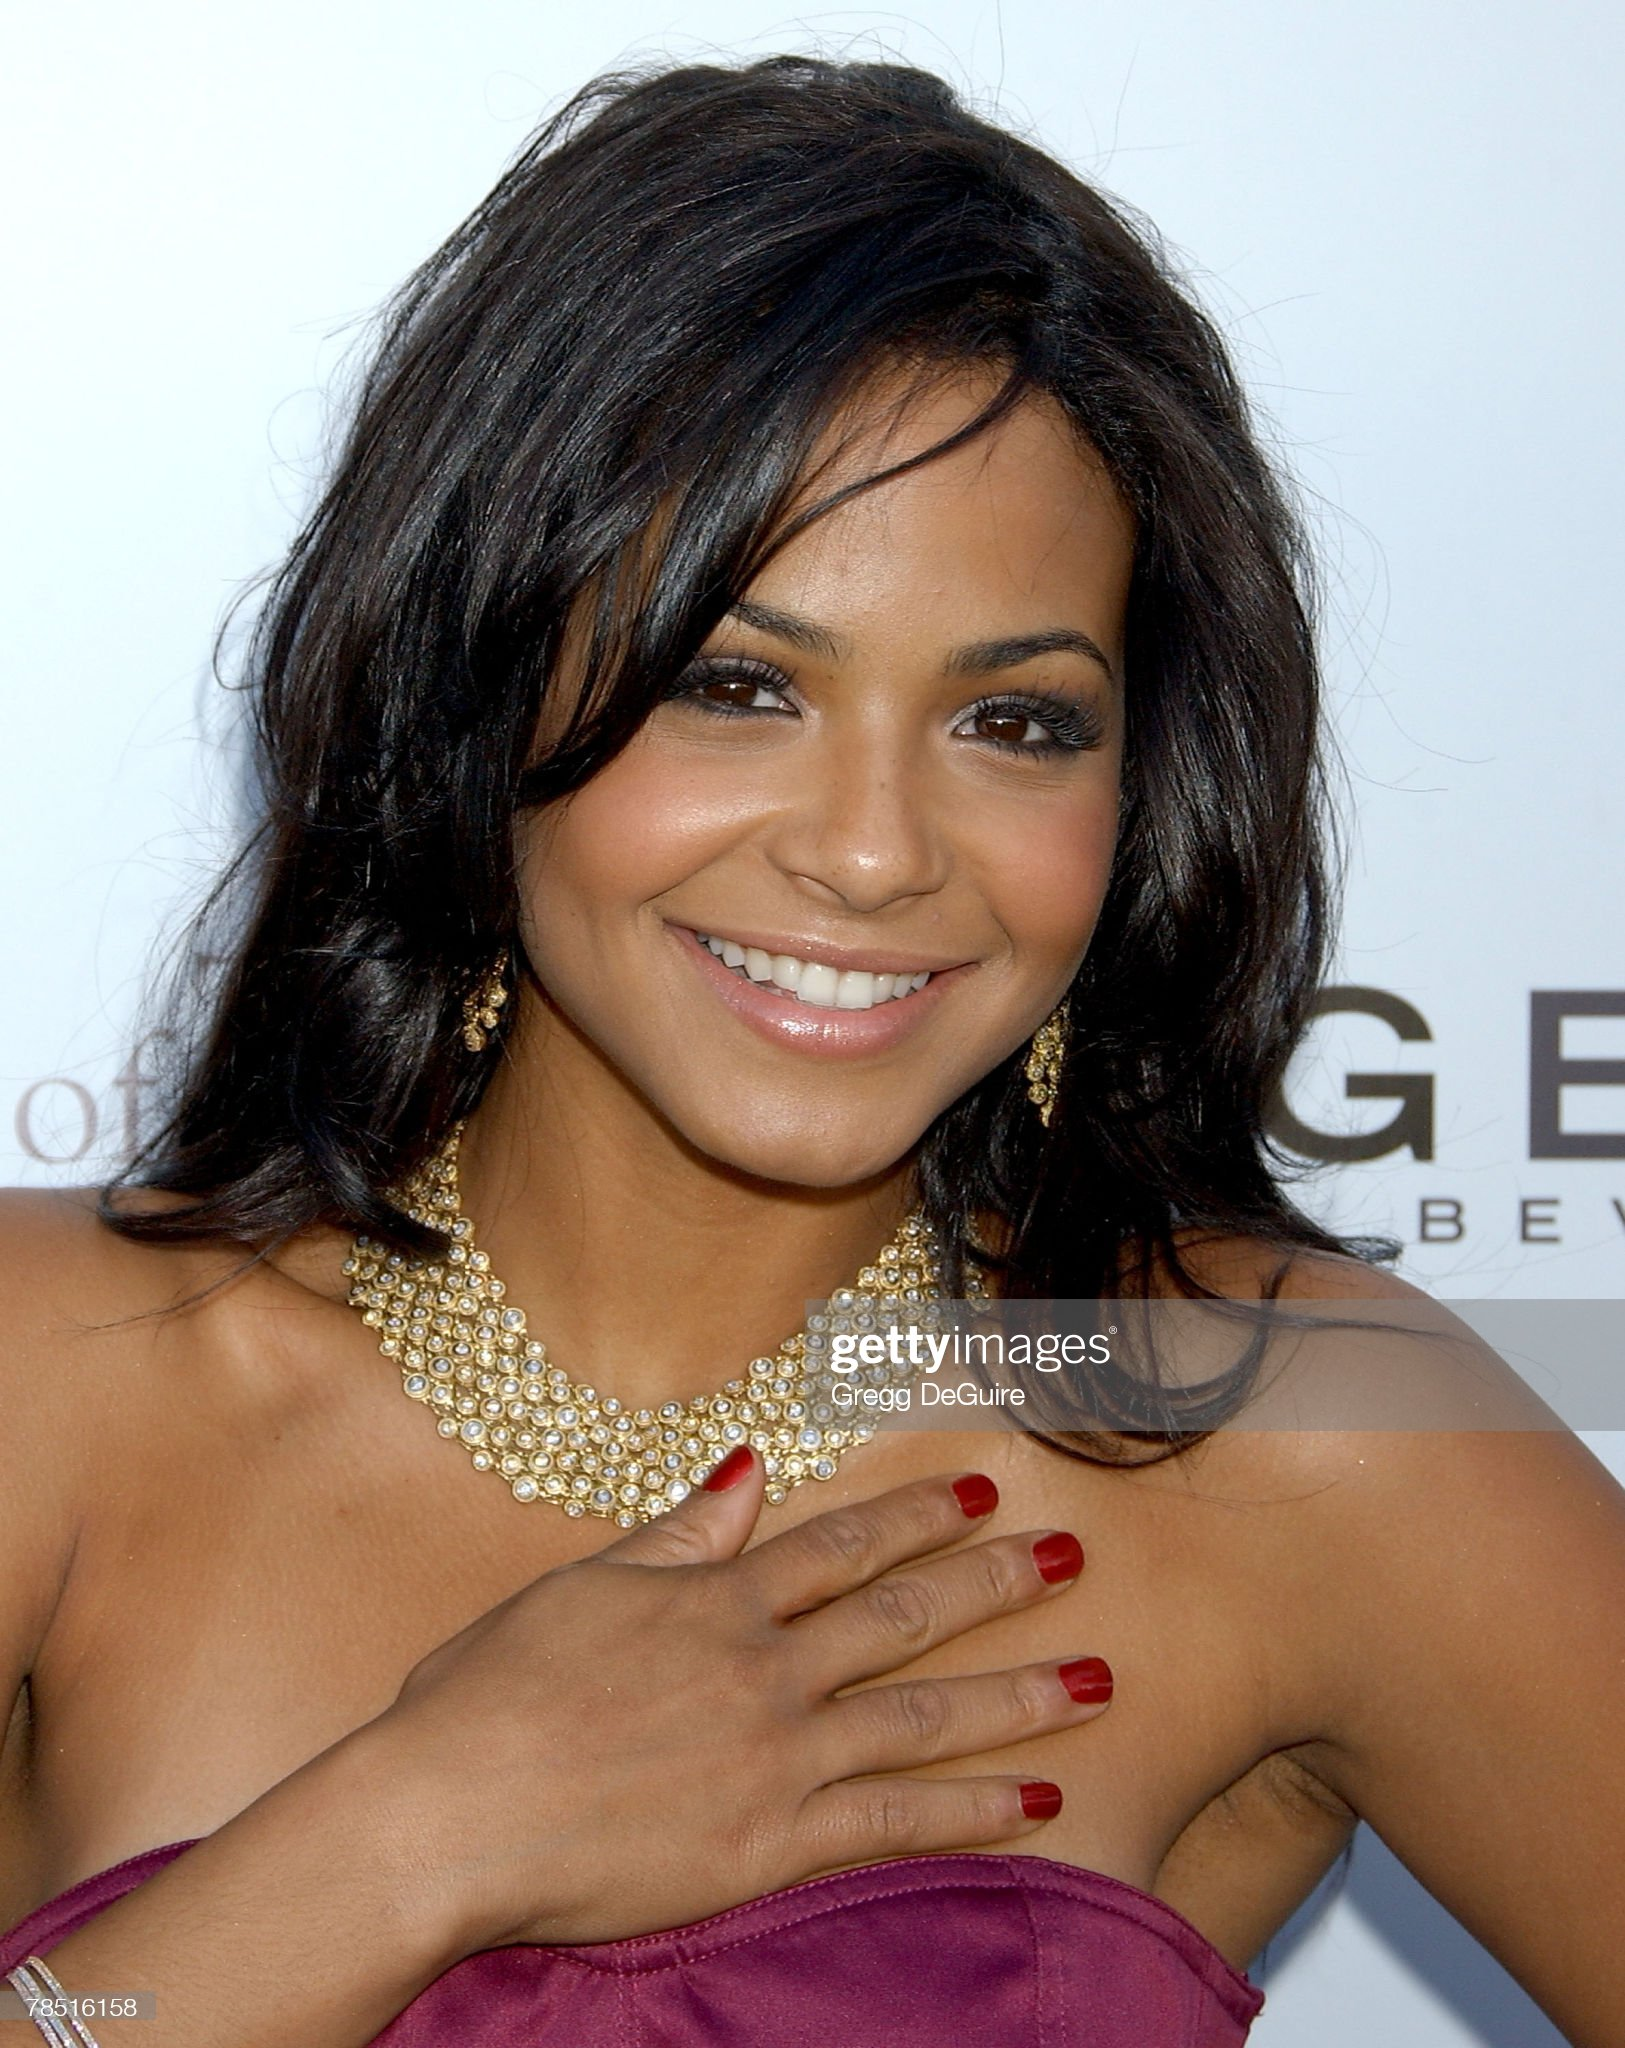 TOP famosas charco - Página 2 Actresssinger-christina-milian-arrives-at-the-elizabeth-taylor-house-picture-id78516158?s=2048x2048